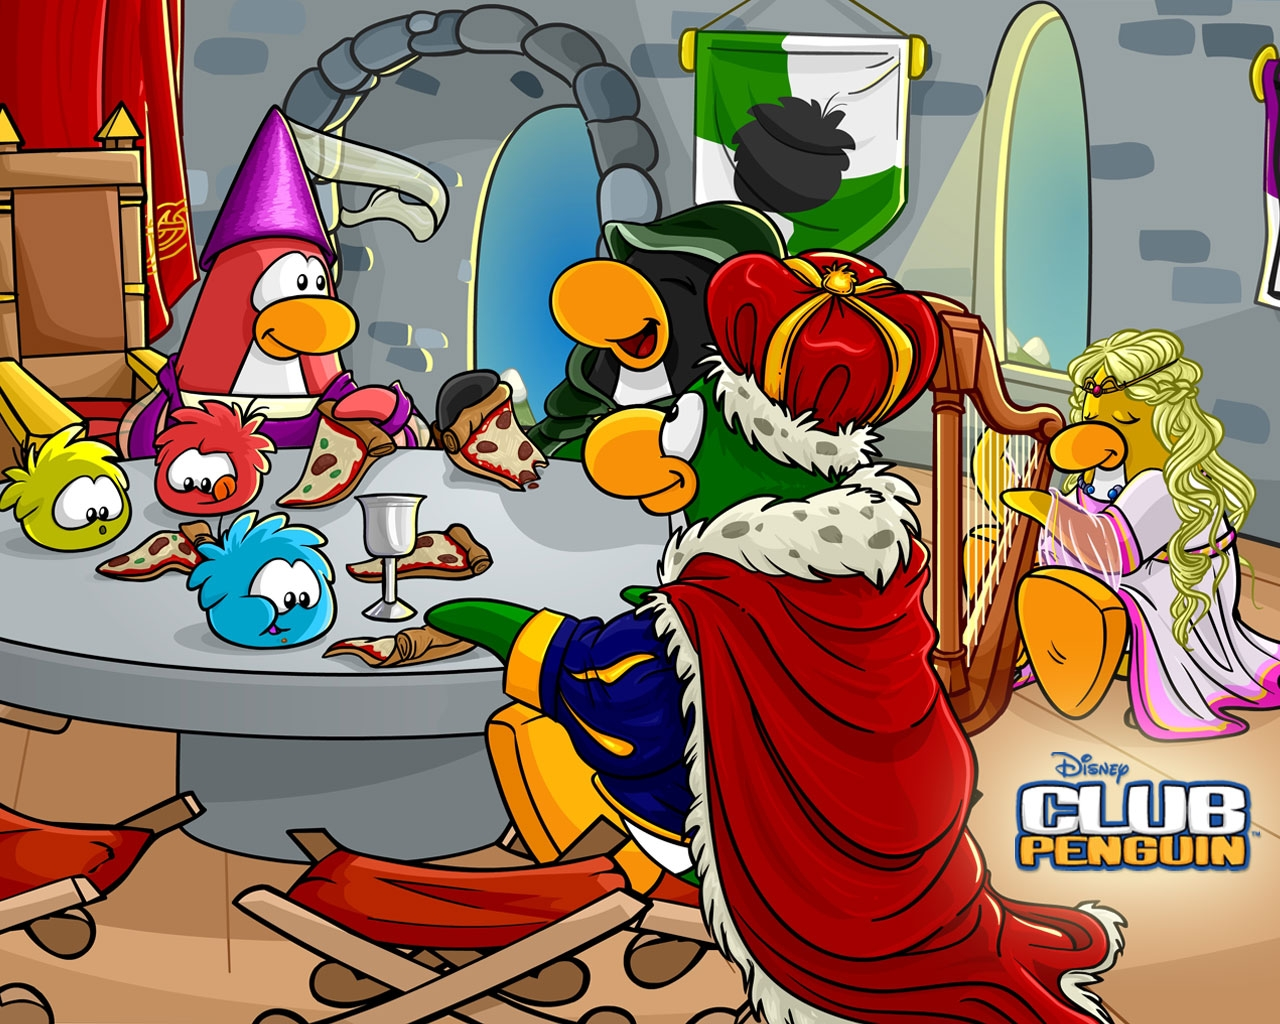 Club Penguin images Club Penguin HD wallpaper and background 1280x1024